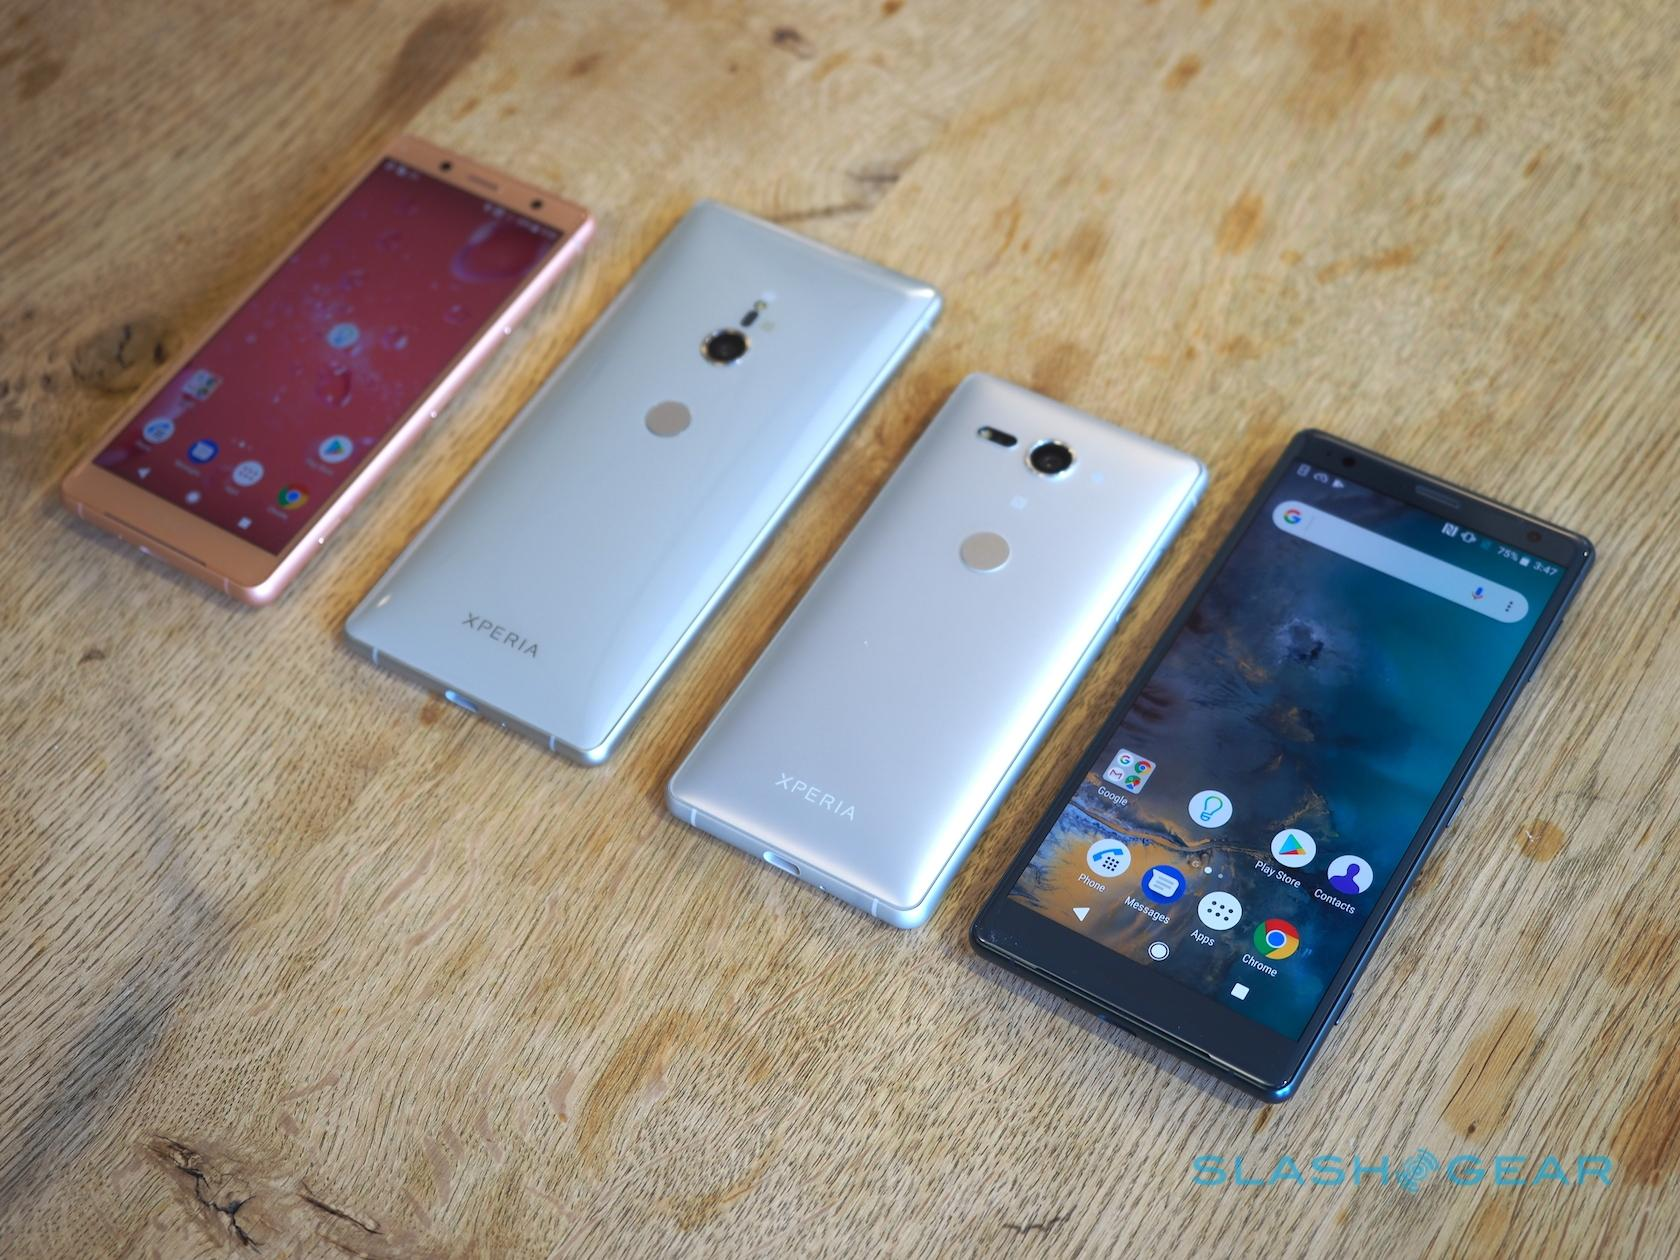 Sony Xperia XZ2 and Compact release: Coming to America